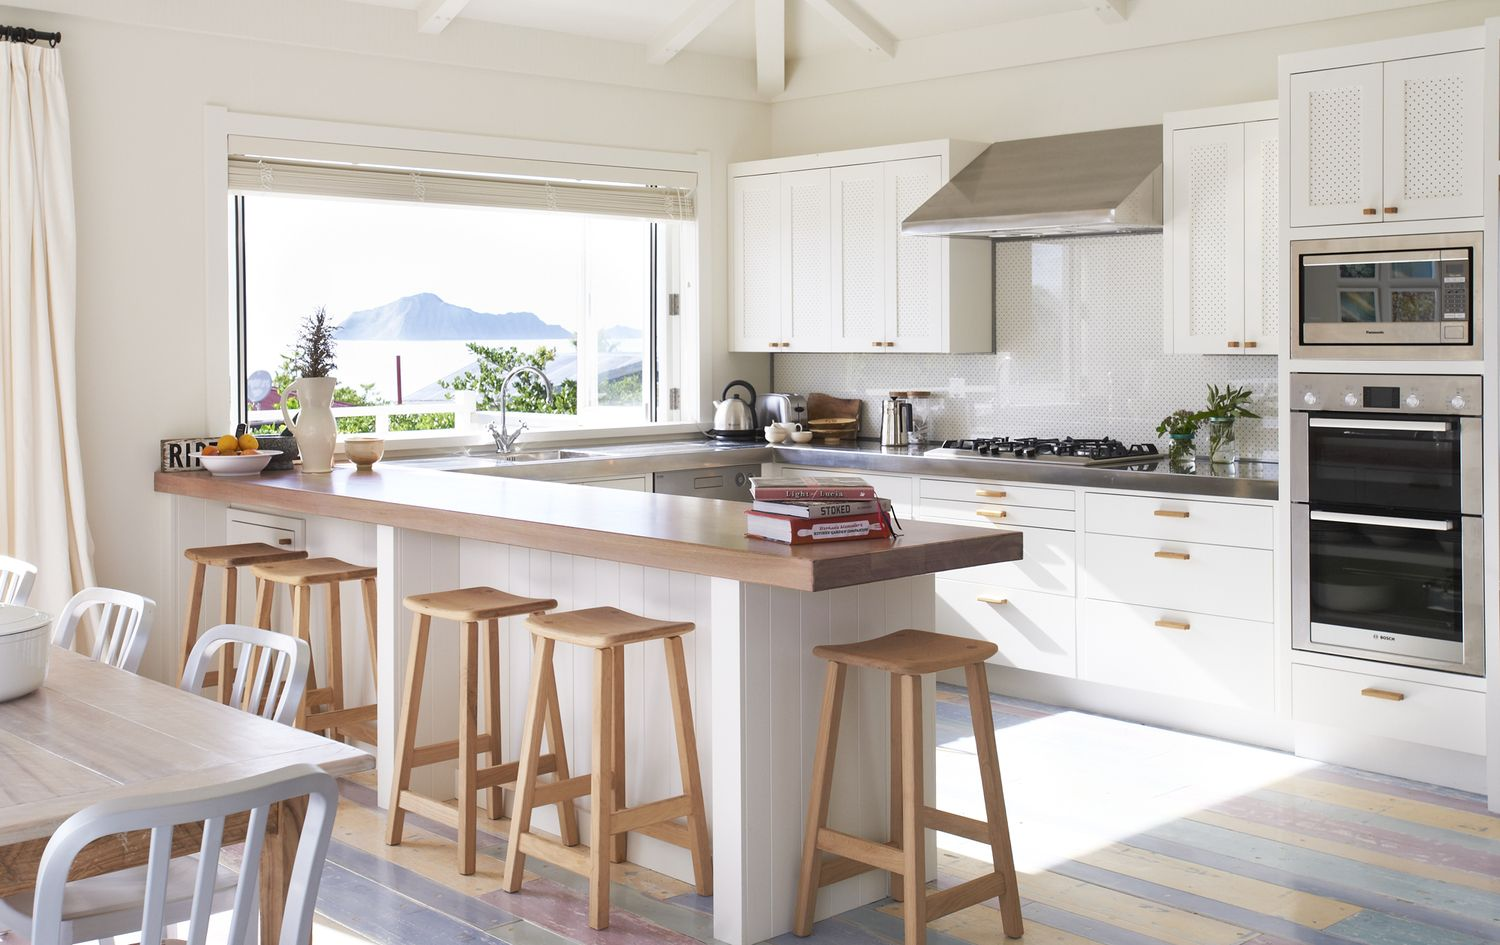 WH4.jpg | Kitchen - Traditional | Pinterest | Architecture, UX/UI ...